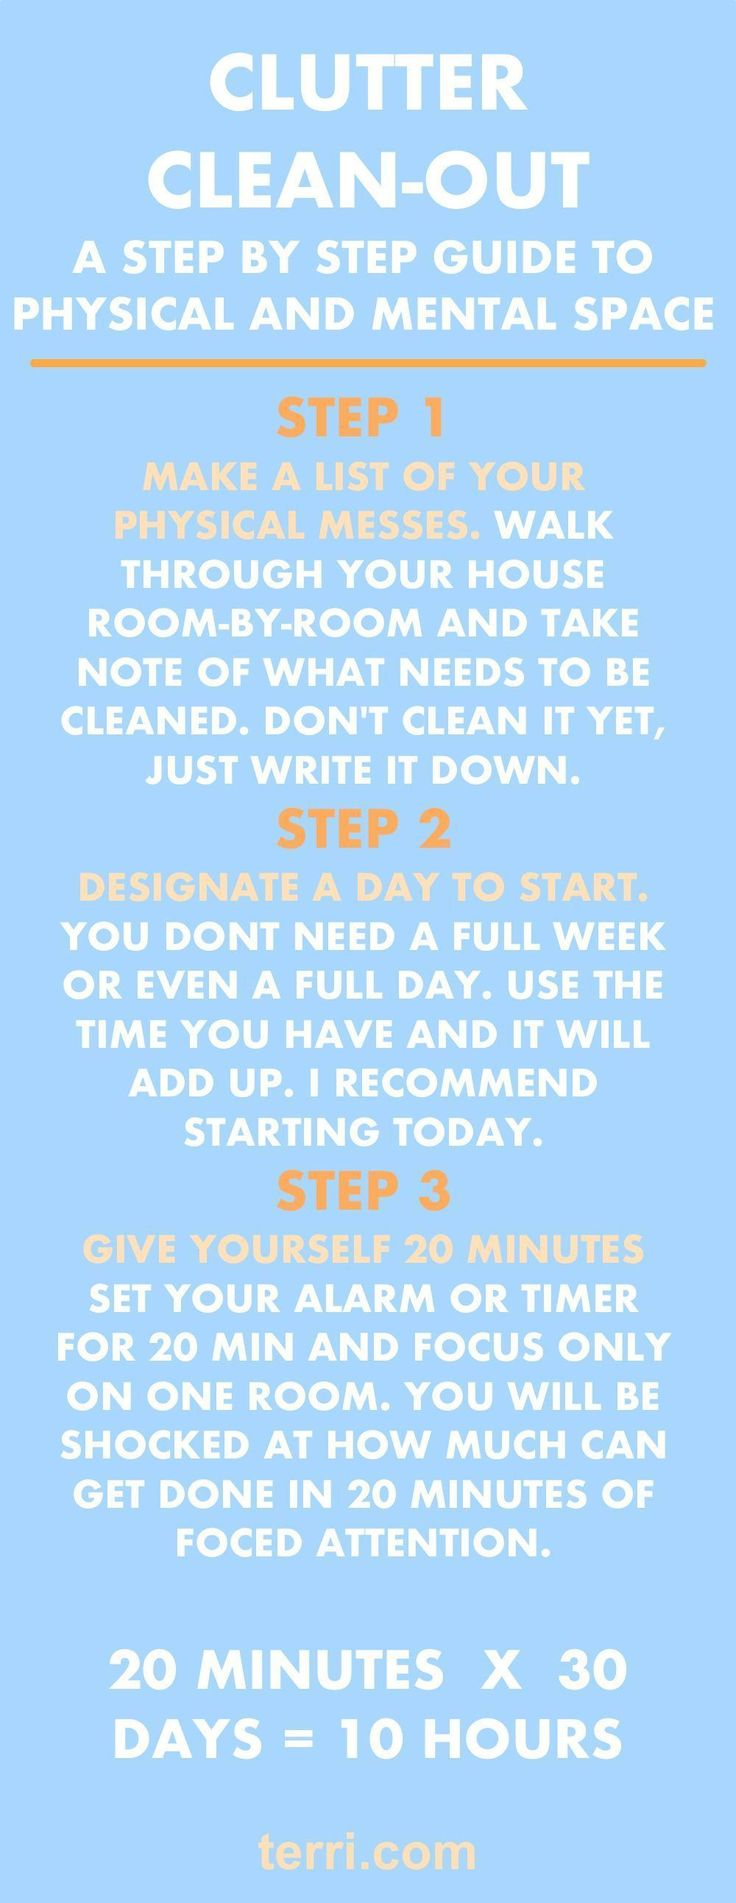 Cleaning your messes allows you to focus, with more energy, on the future. When projects go unfinished, not only do they take up physical space, but they also take up mental space. All of your unfinished projects are draining your energy and stealing your peace. This step by step guide can be used as a great cleaning schedule. These are my cleaning tips, hacks and tricks for physical and mental clutter! For more success tips visit terri.com #clutterclearingtips #clutterhacks